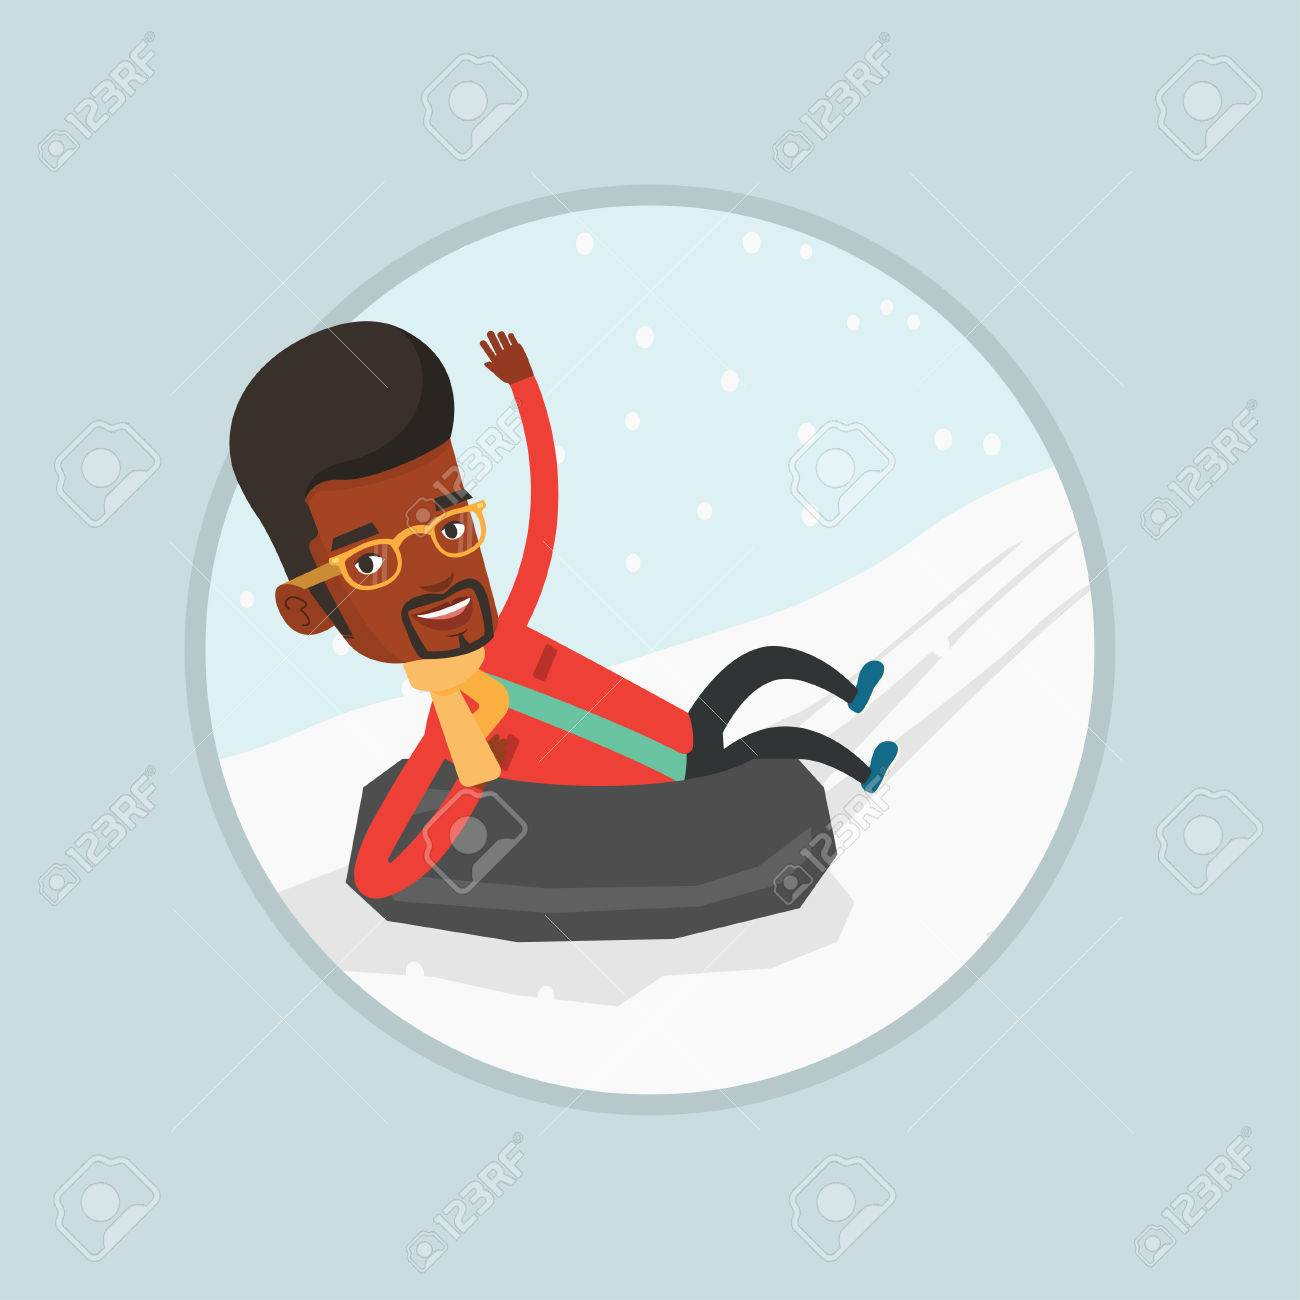 Vector Young African Man Having Fun While Sledding On Snow Rubber Tube Man Riding On Snow Rubber Tube